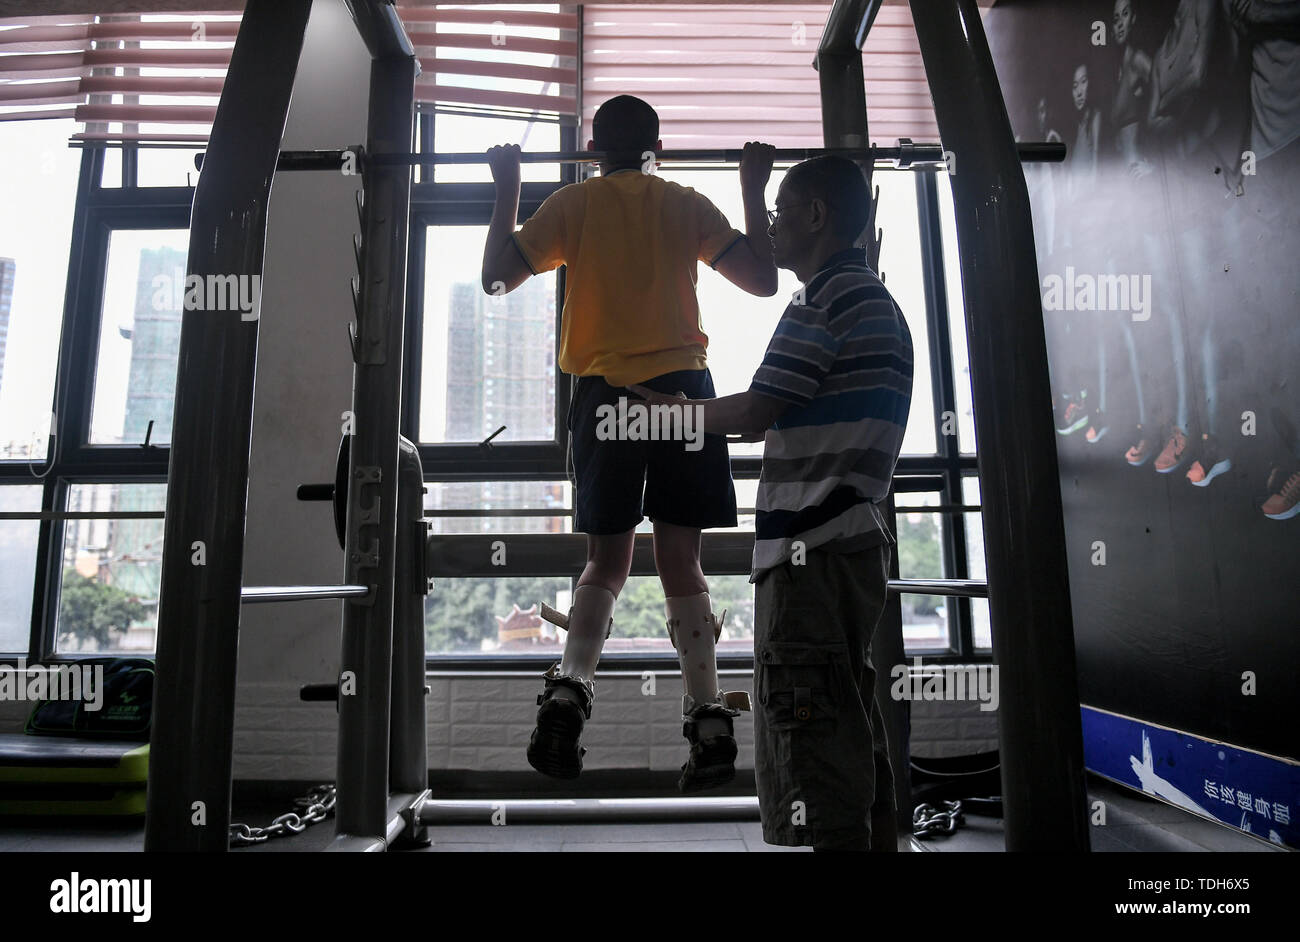 (190616) -- CHENGDU, June 16, 2019 (Xinhua) -- Guan Yongkang helps his son to exercise at the gym in Jinjiang District, Chengdu City, southwest China's Sichuan Province, June 11, 2019. Sun Hongwei, the son of 59-year-old Guan Yongkang, was born with cerebral palsy in 1995 and suffered from amyotrophy.  Sun ever received professional rehabilitation training in training courses organized by Chengdu Qingyang Federation of Disabled Persons in 2004. Later he stopped the course because of overage. In 2015, his father Guan decided to take him to practice in the gym. After a period of searching, a gym - Stock Image